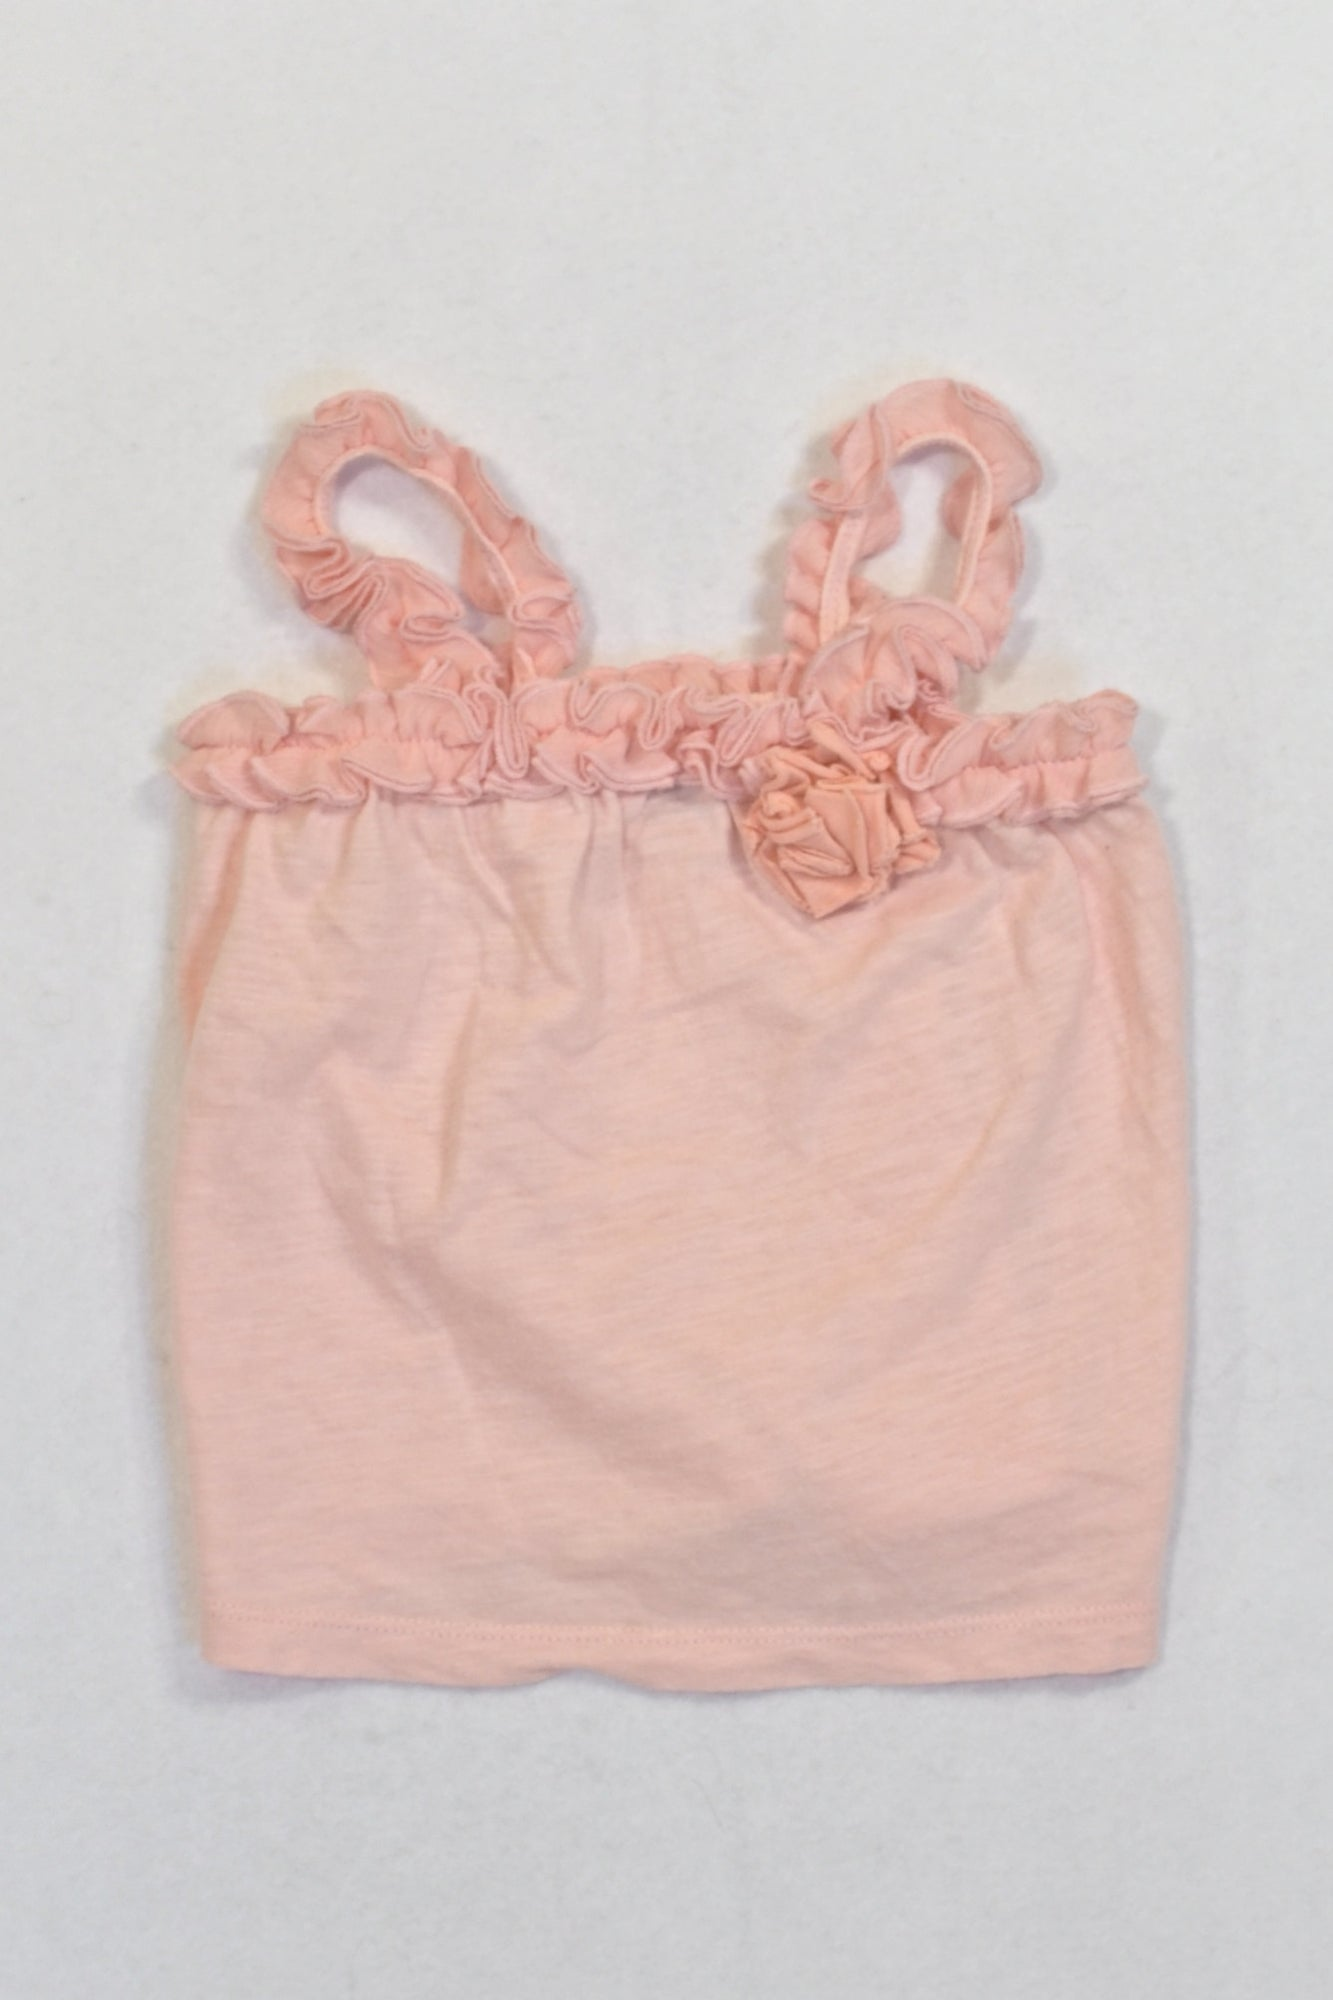 GAP Peach Frill Trim Top Girls 6-12 months